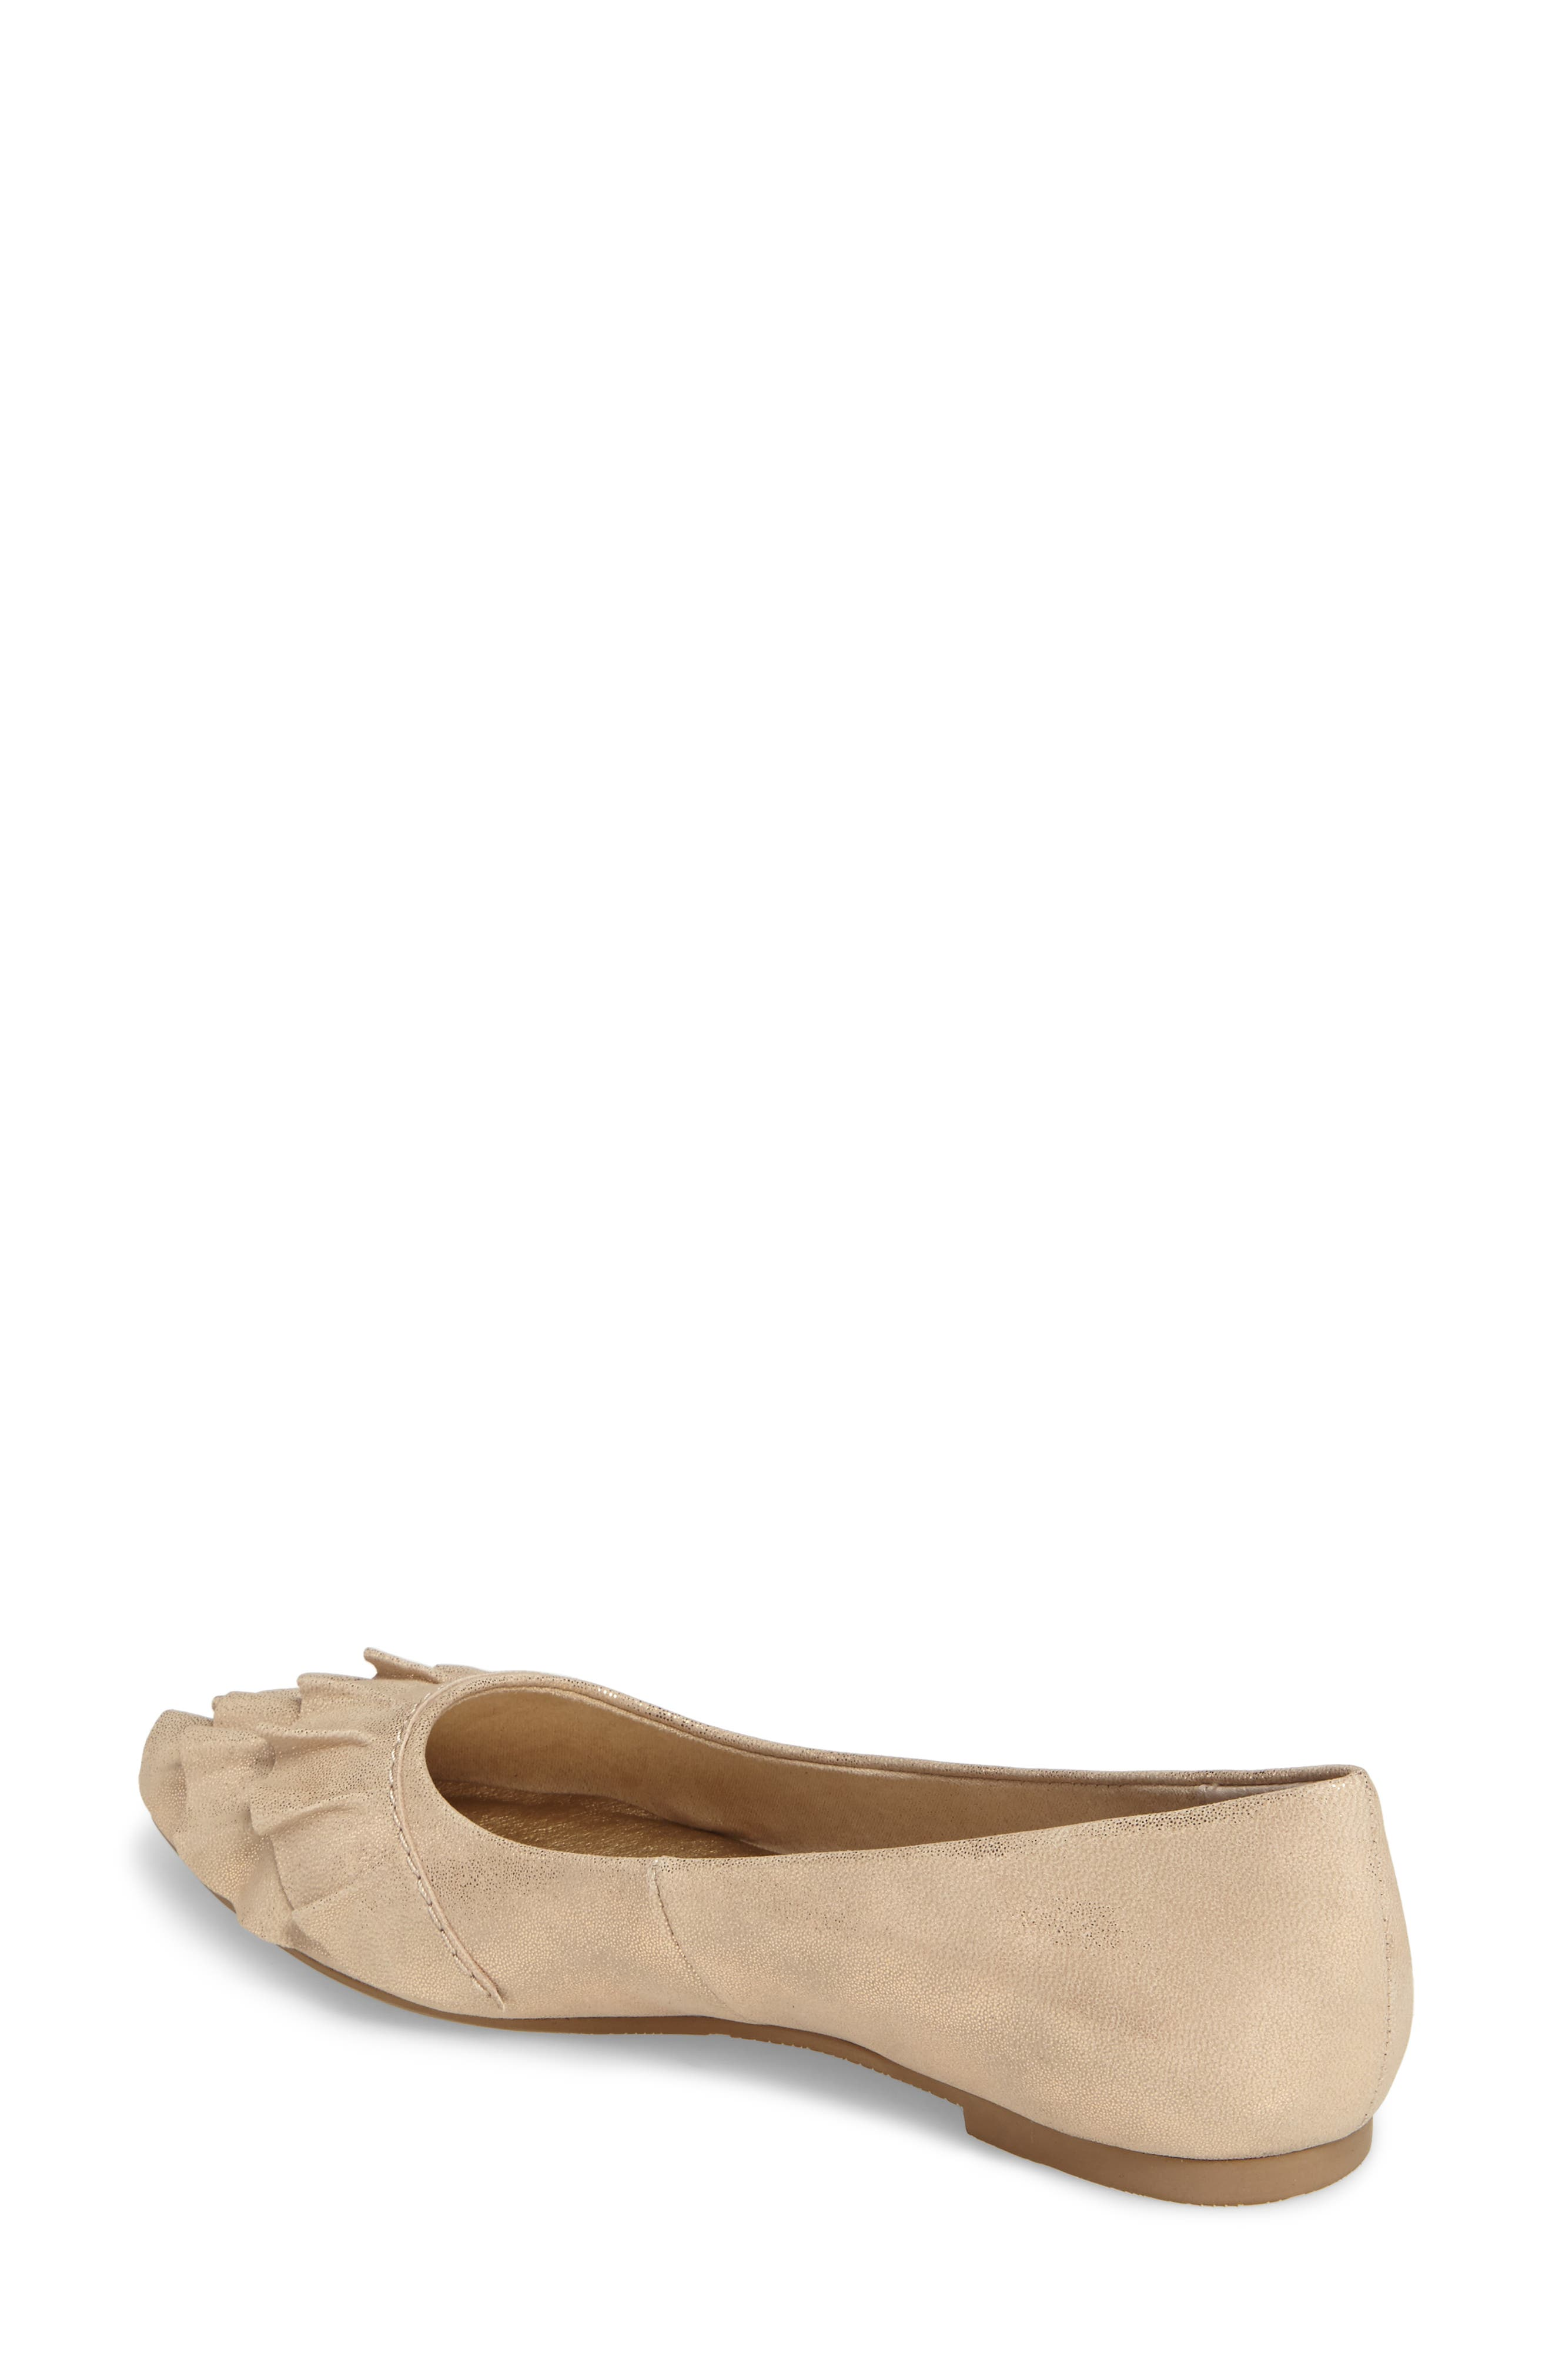 Downstage Pointy Toe Flat,                             Alternate thumbnail 12, color,